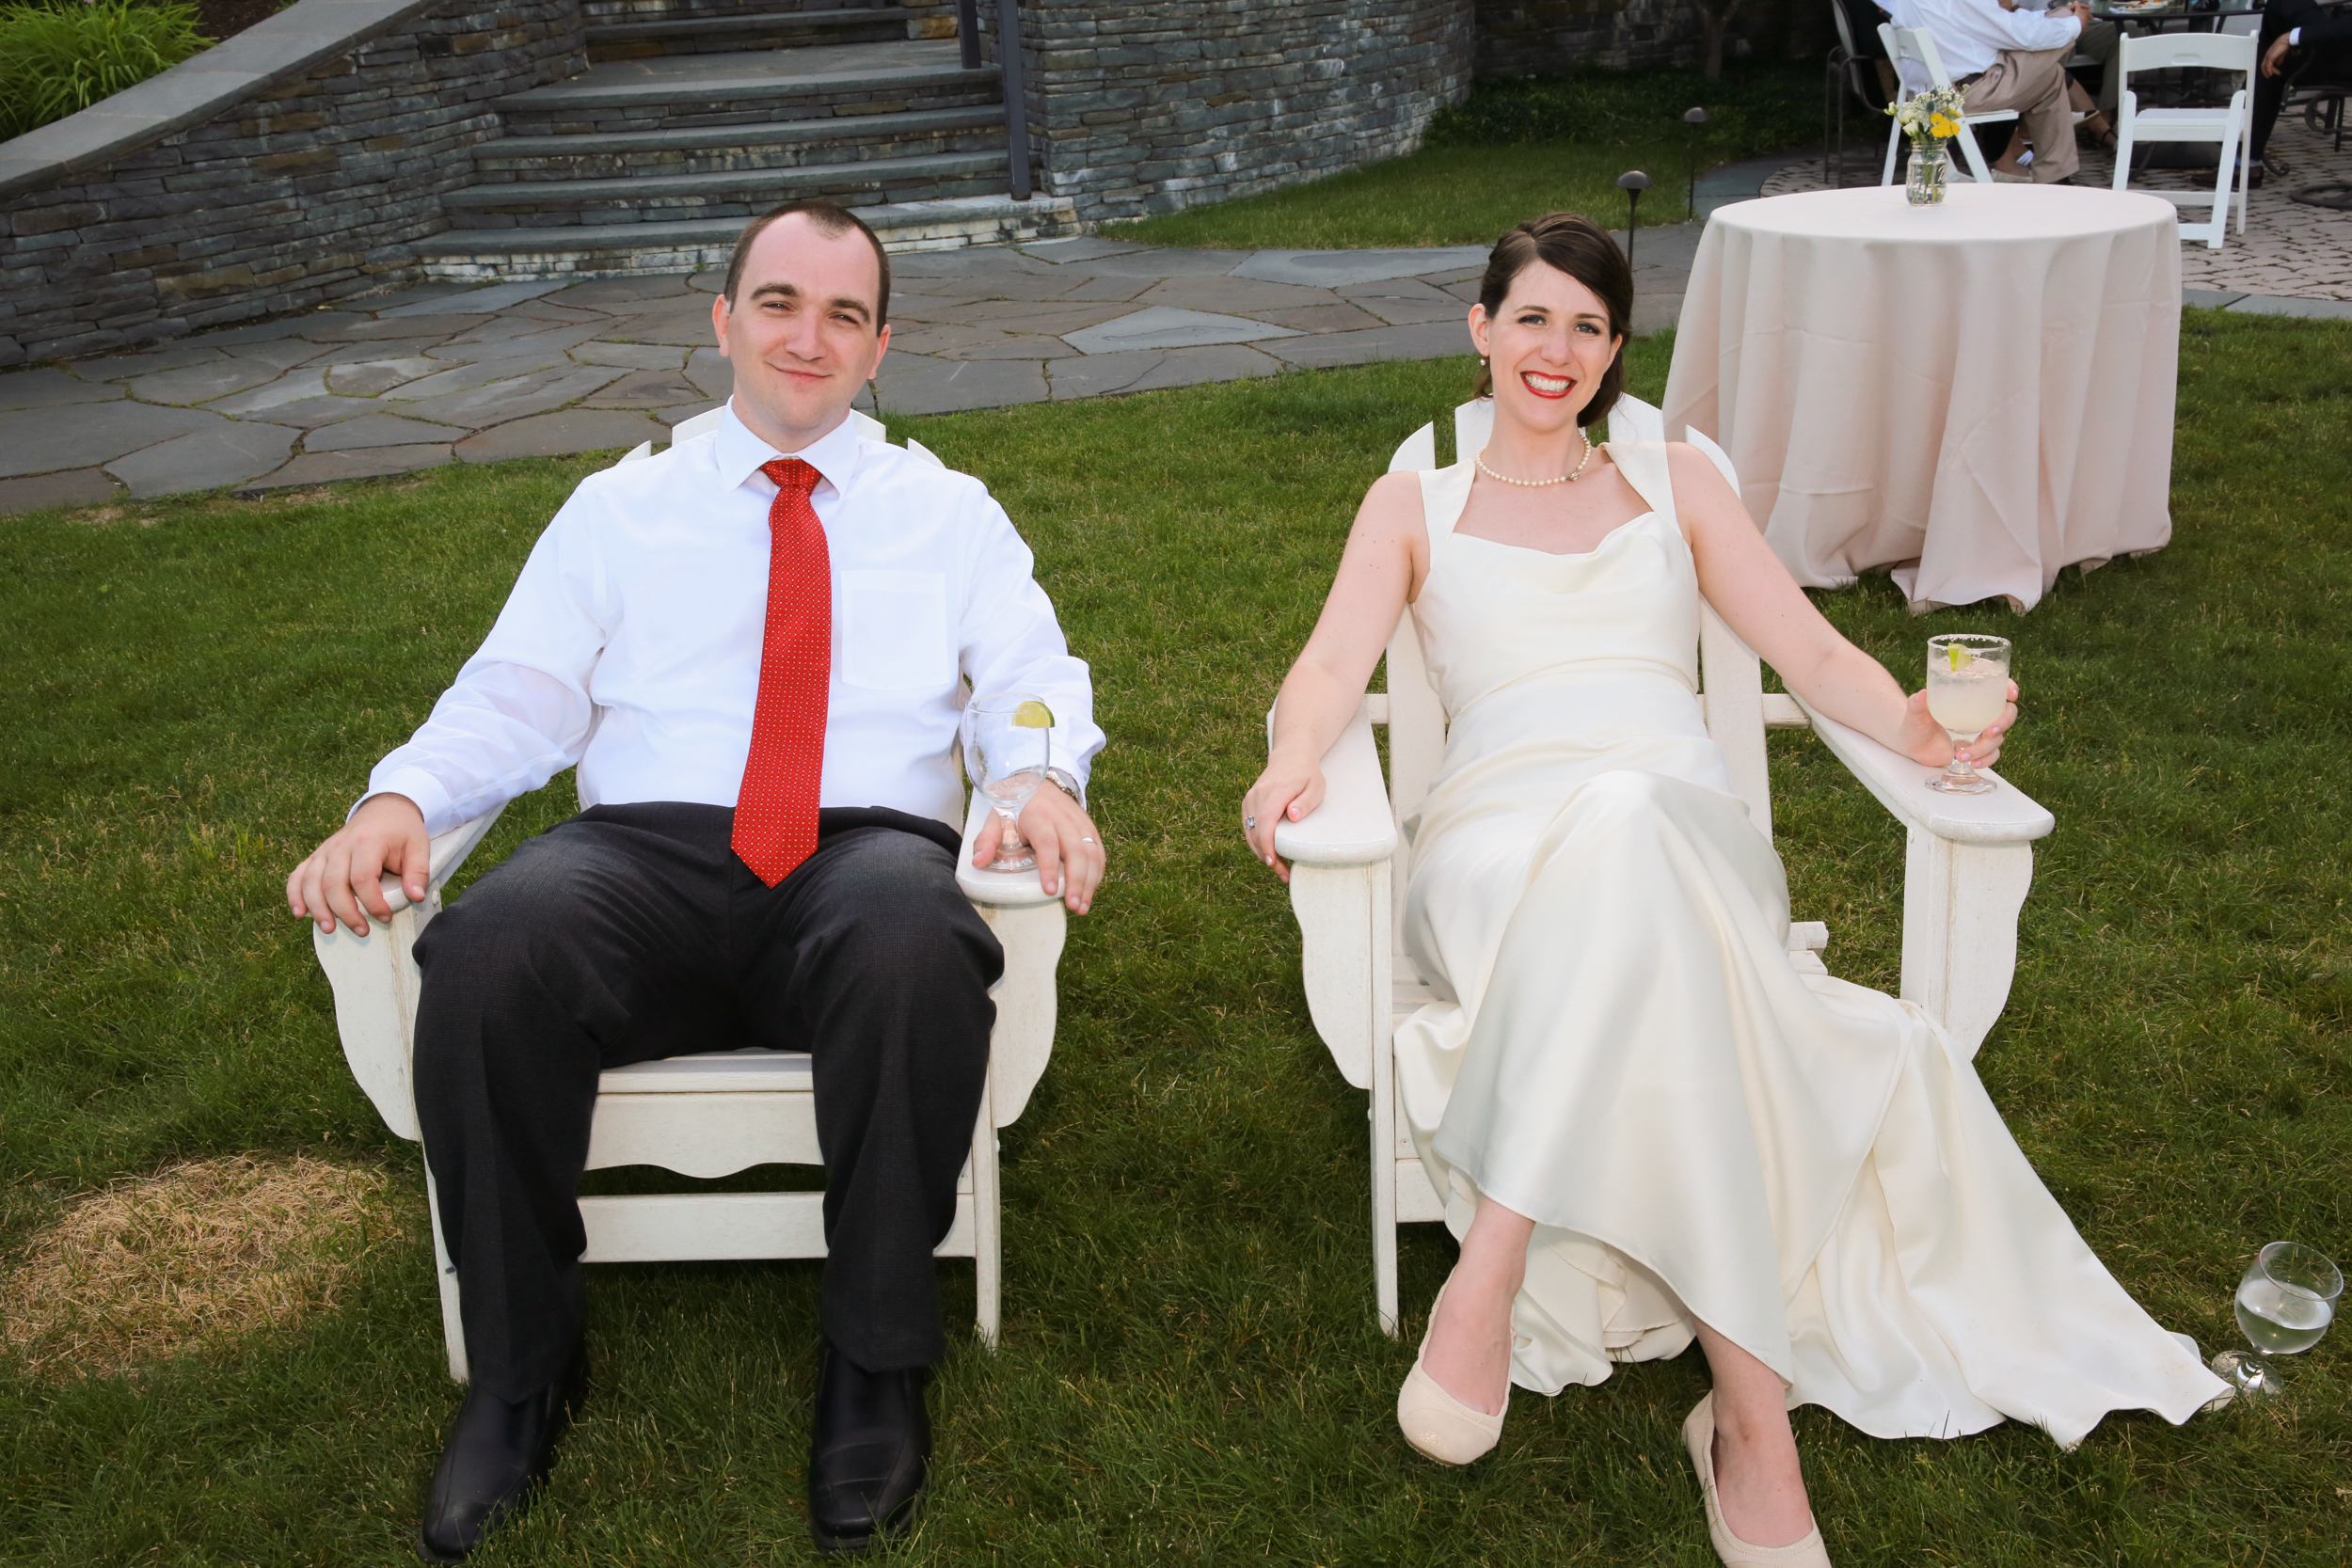 Photo of Bride and Groom Relaxing on Lawn Chairs